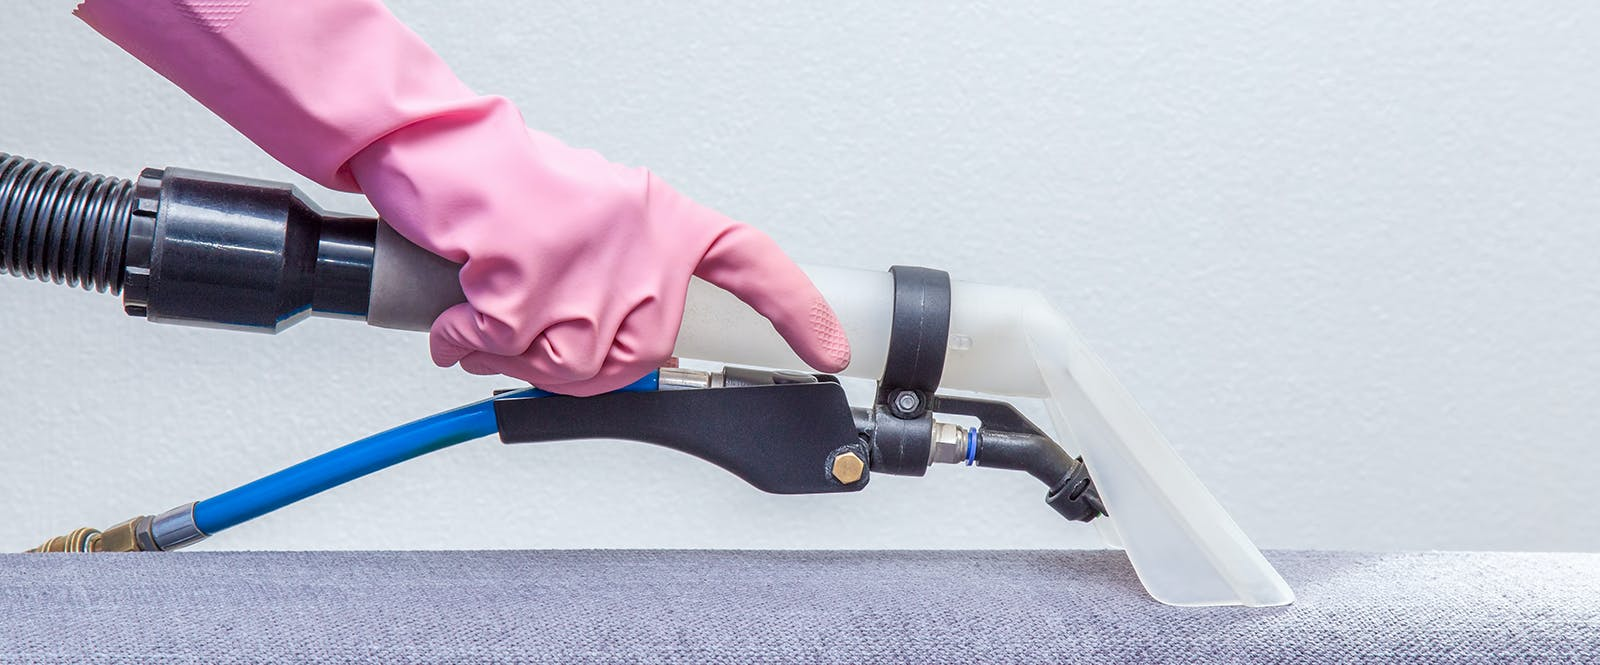 About our sofa cleaning service